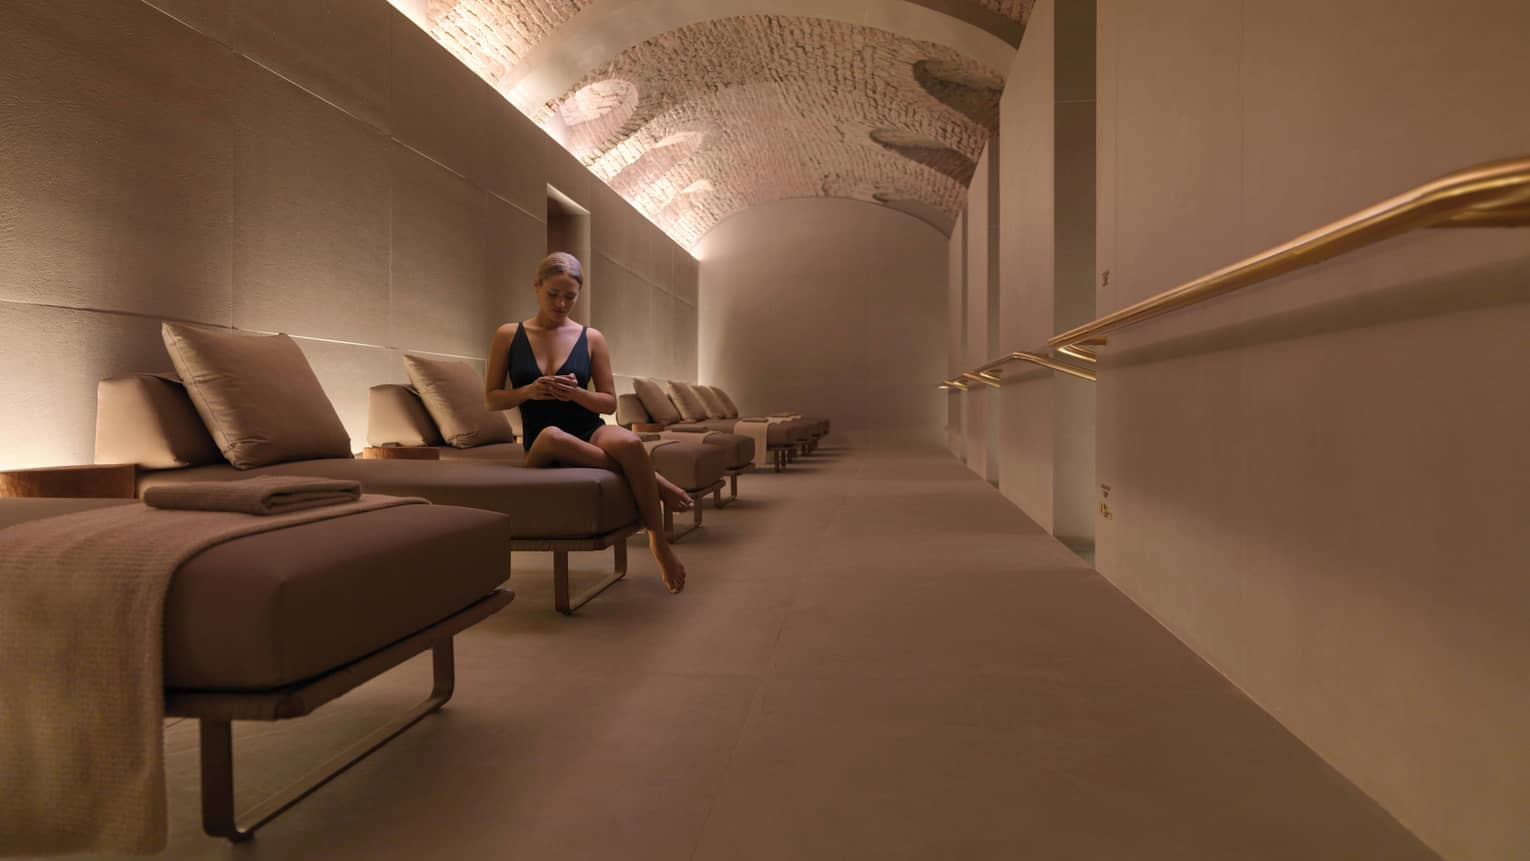 Woman wearing swimsuit sits on end of plush lounge chair in spa under curved stone ceiling